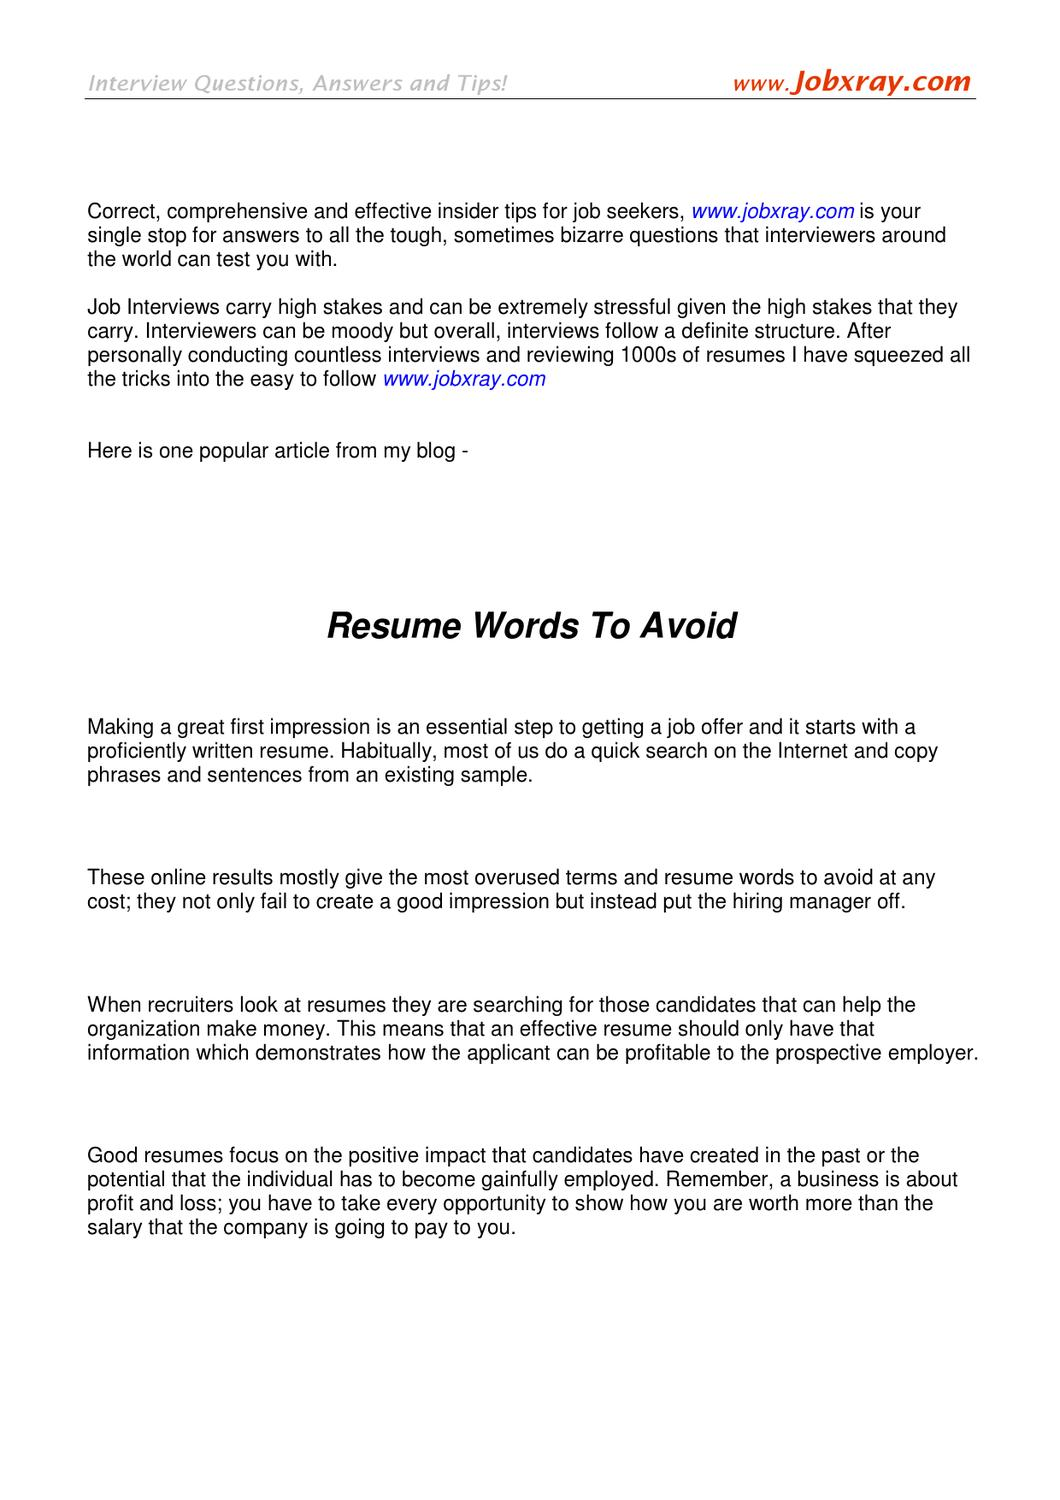 Resume Words To Avoid (from Www.jobxray.com) By Jobxray Jobxray   Issuu